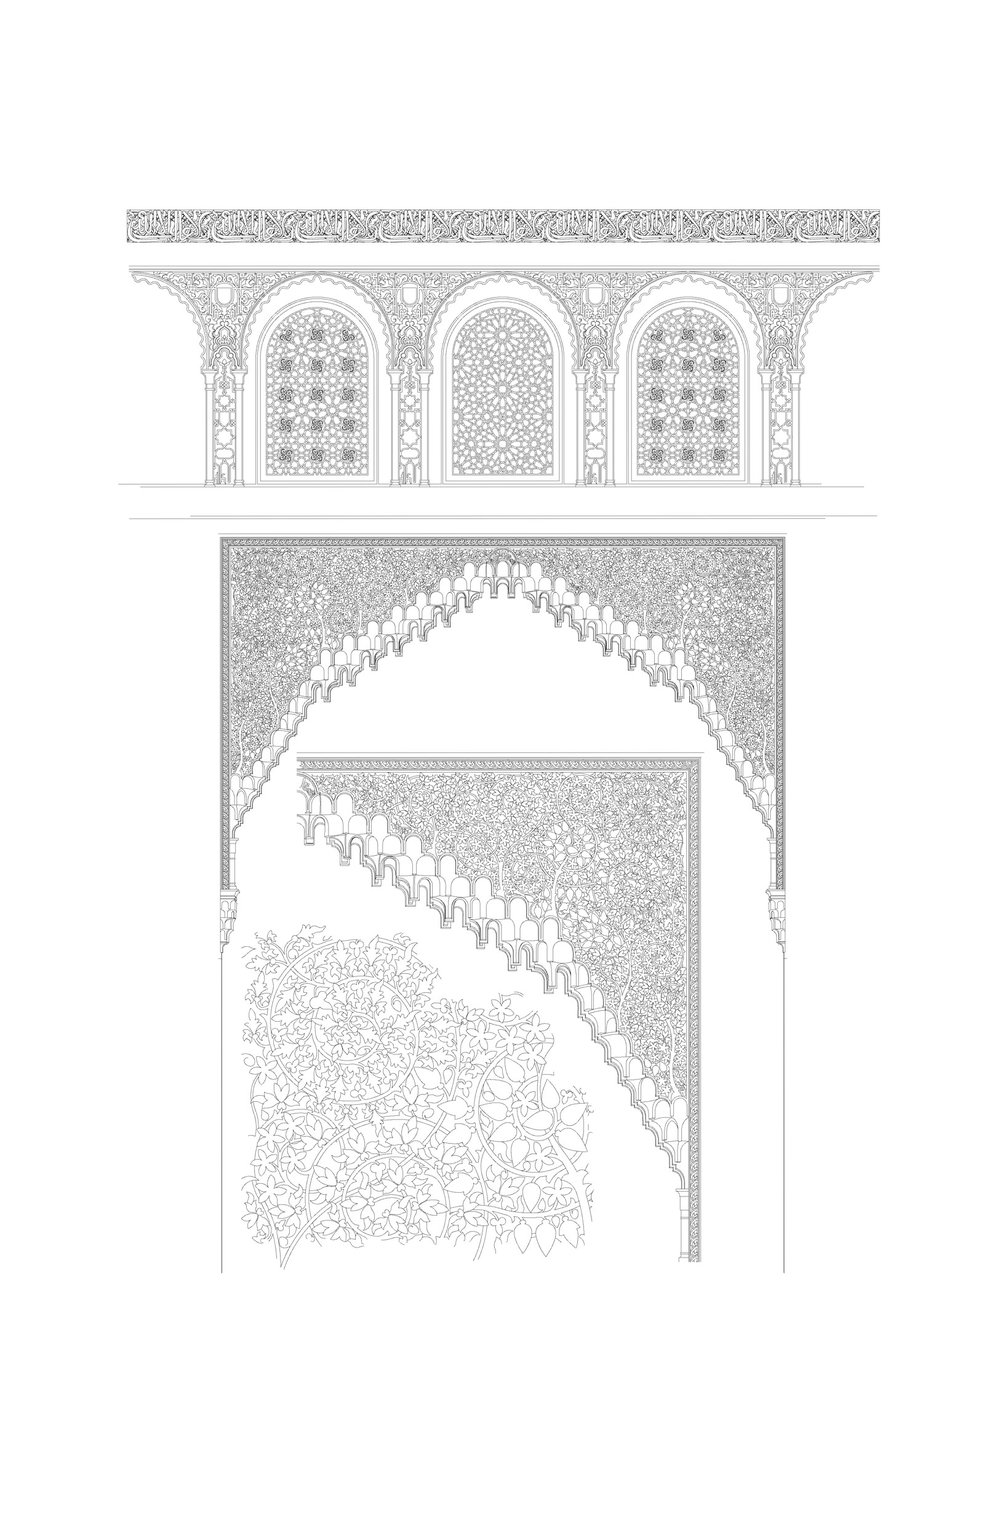 Study for Alhambra Paintings